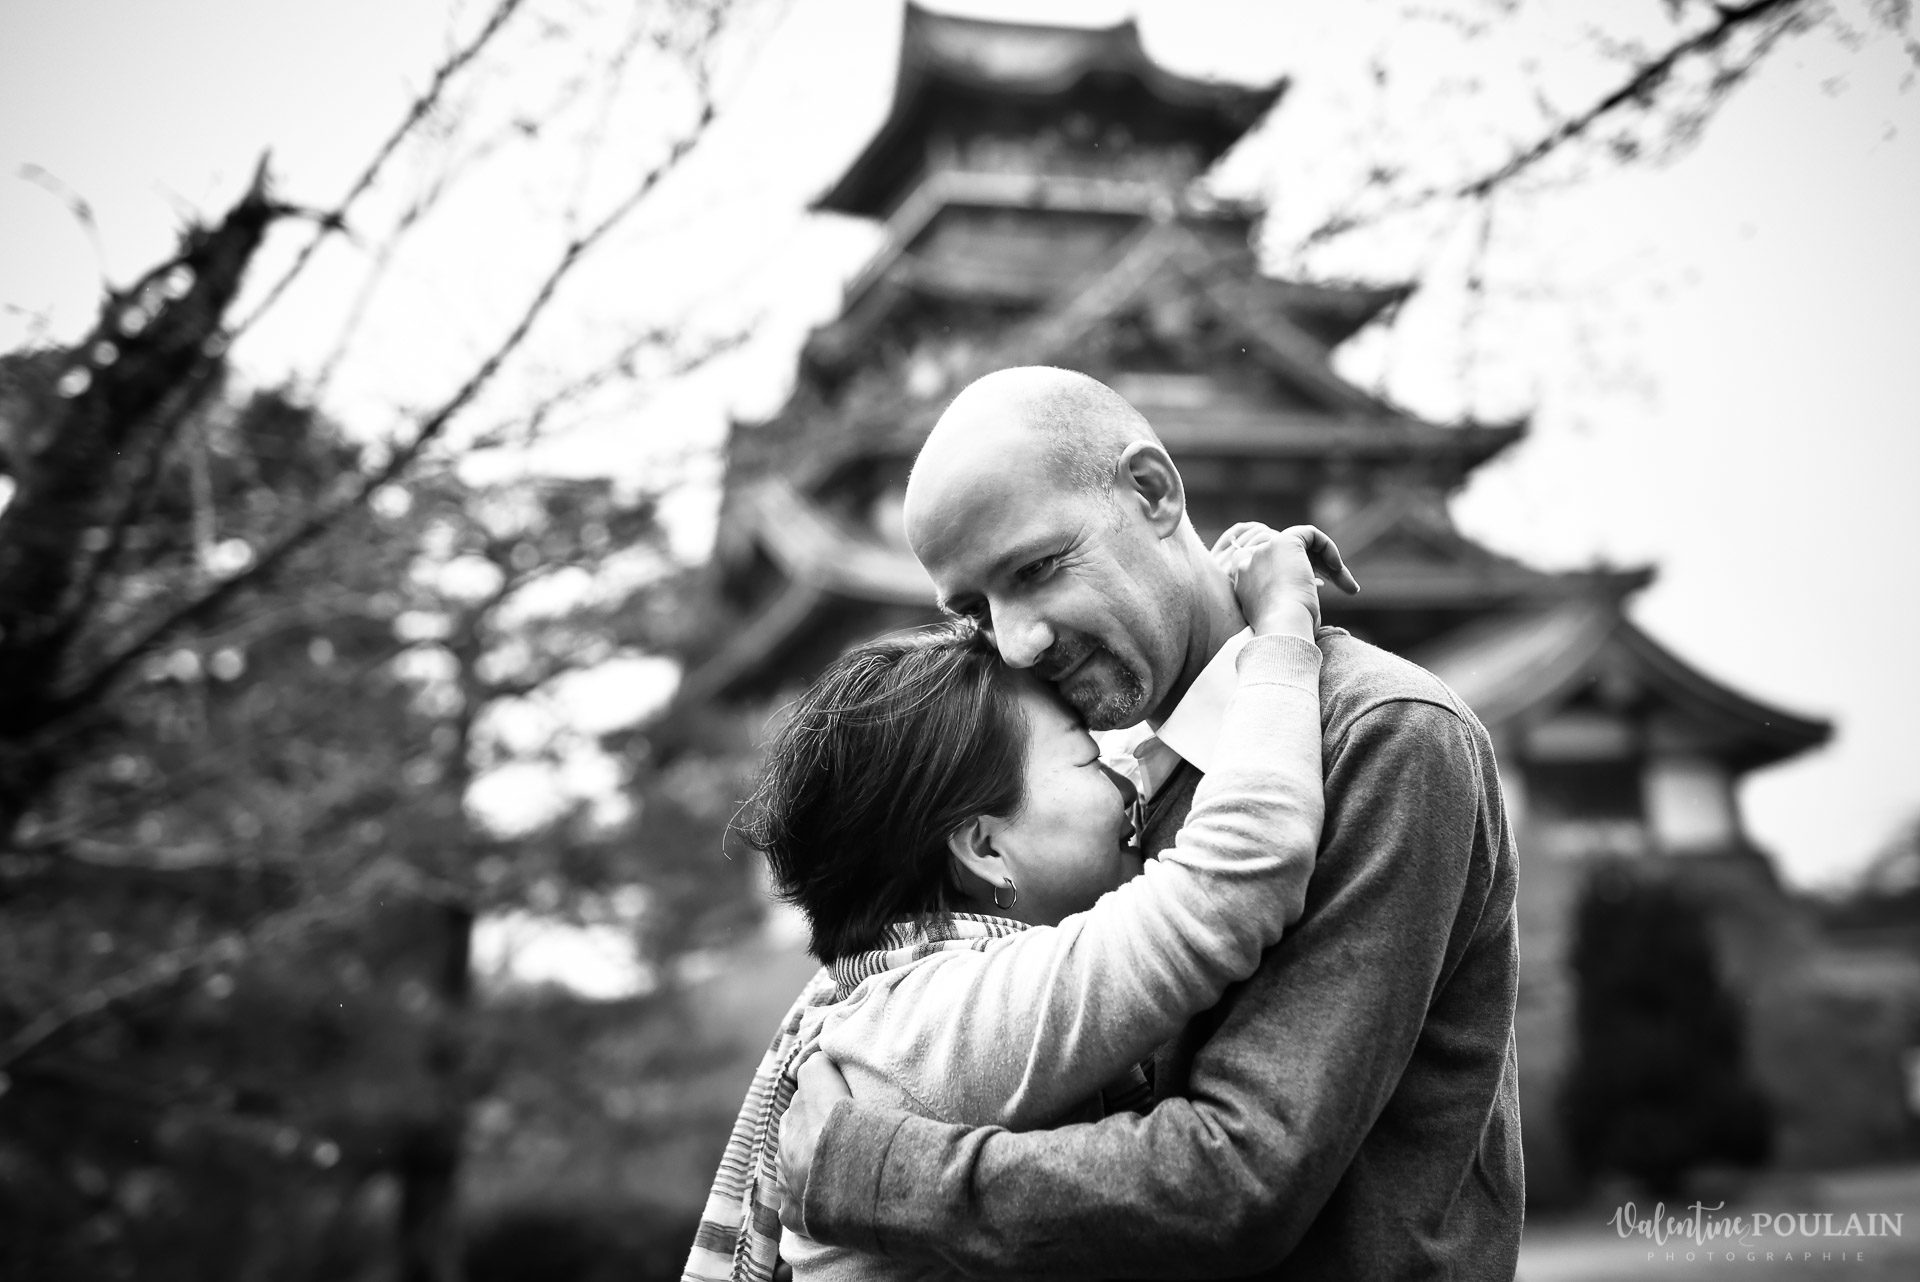 Shooting Couple Kyoto - Valentine Poulain chateau